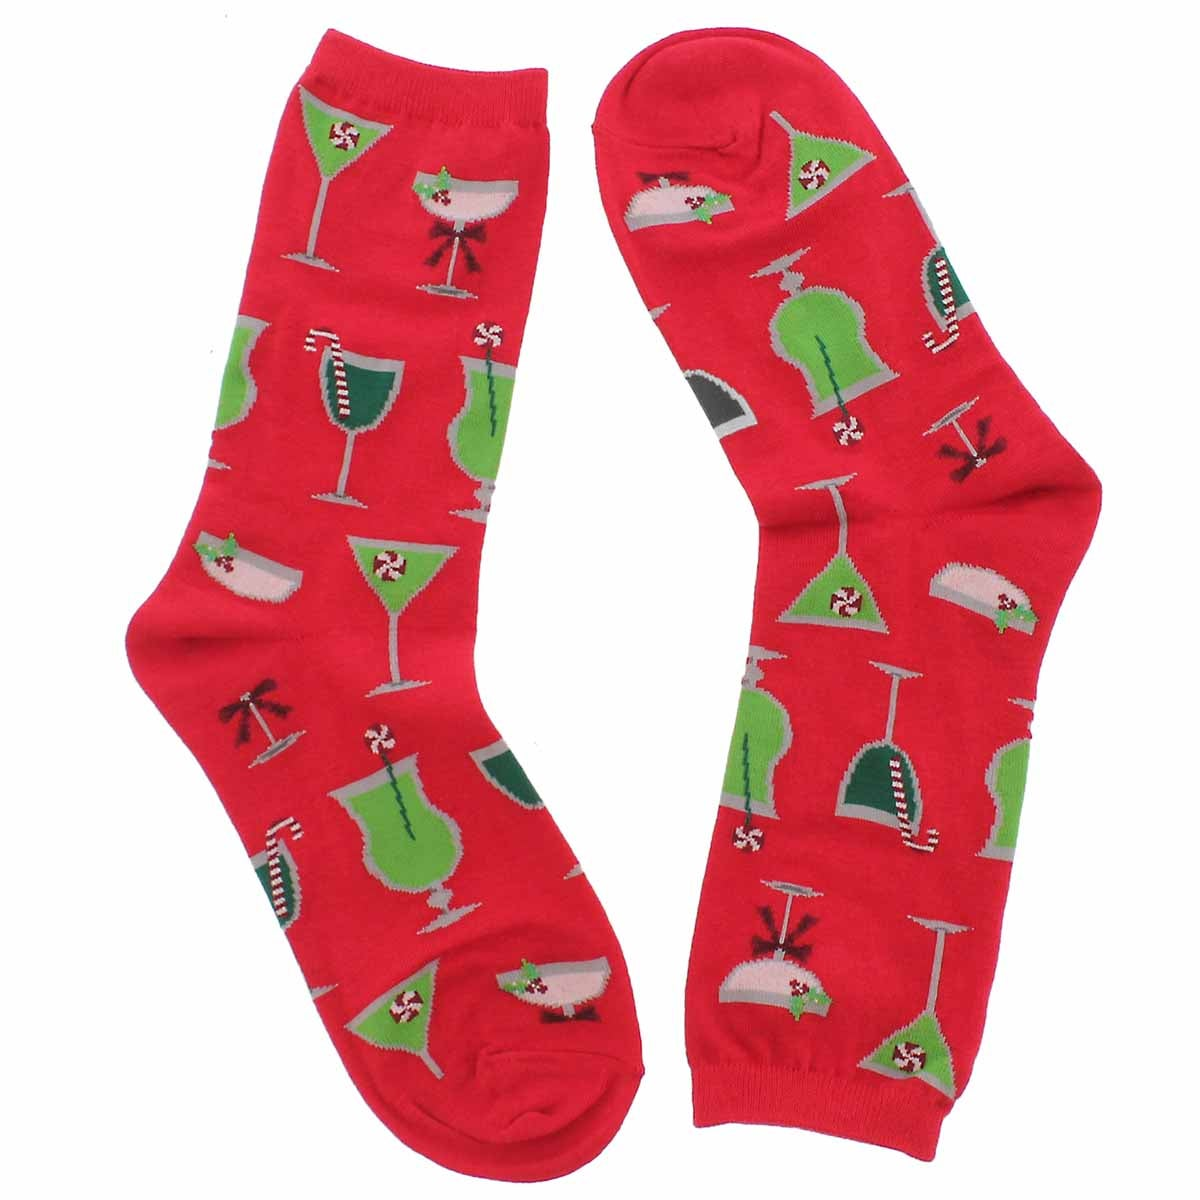 Lds Christmas Cocktails red printed sock